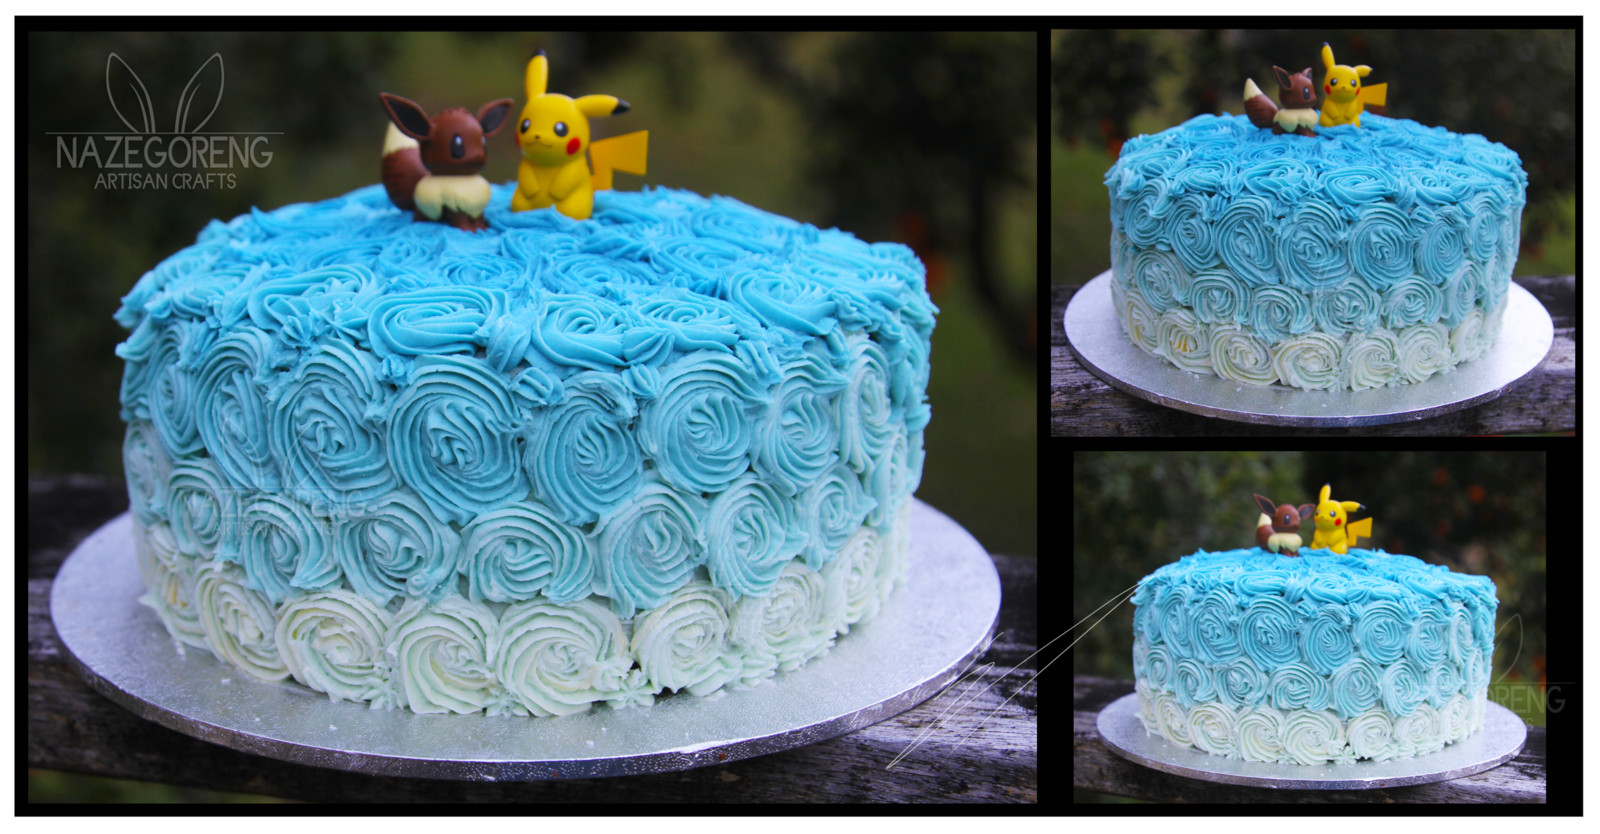 Best ideas about Blue Birthday Cake . Save or Pin Blue ombre birthday cake by Nazegoreng on DeviantArt Now.